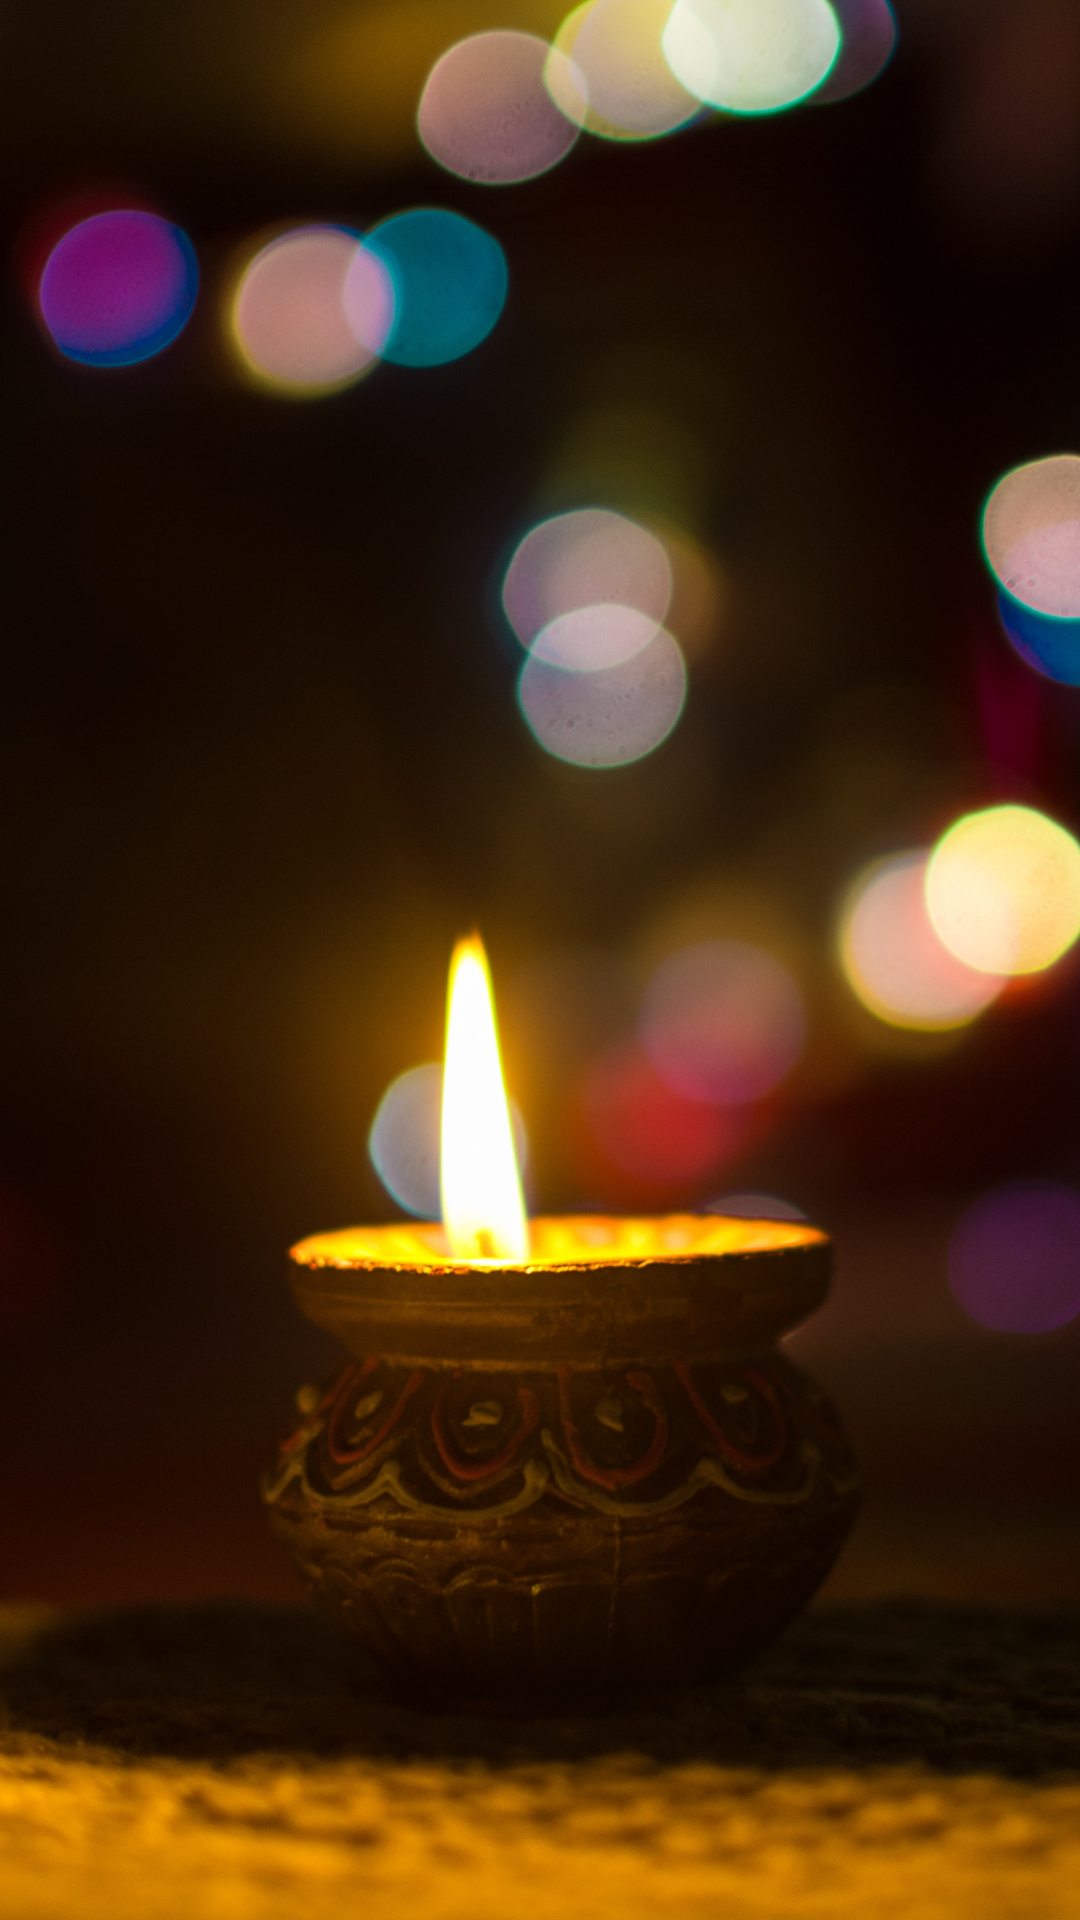 iphone wallpaper candle glare Candle